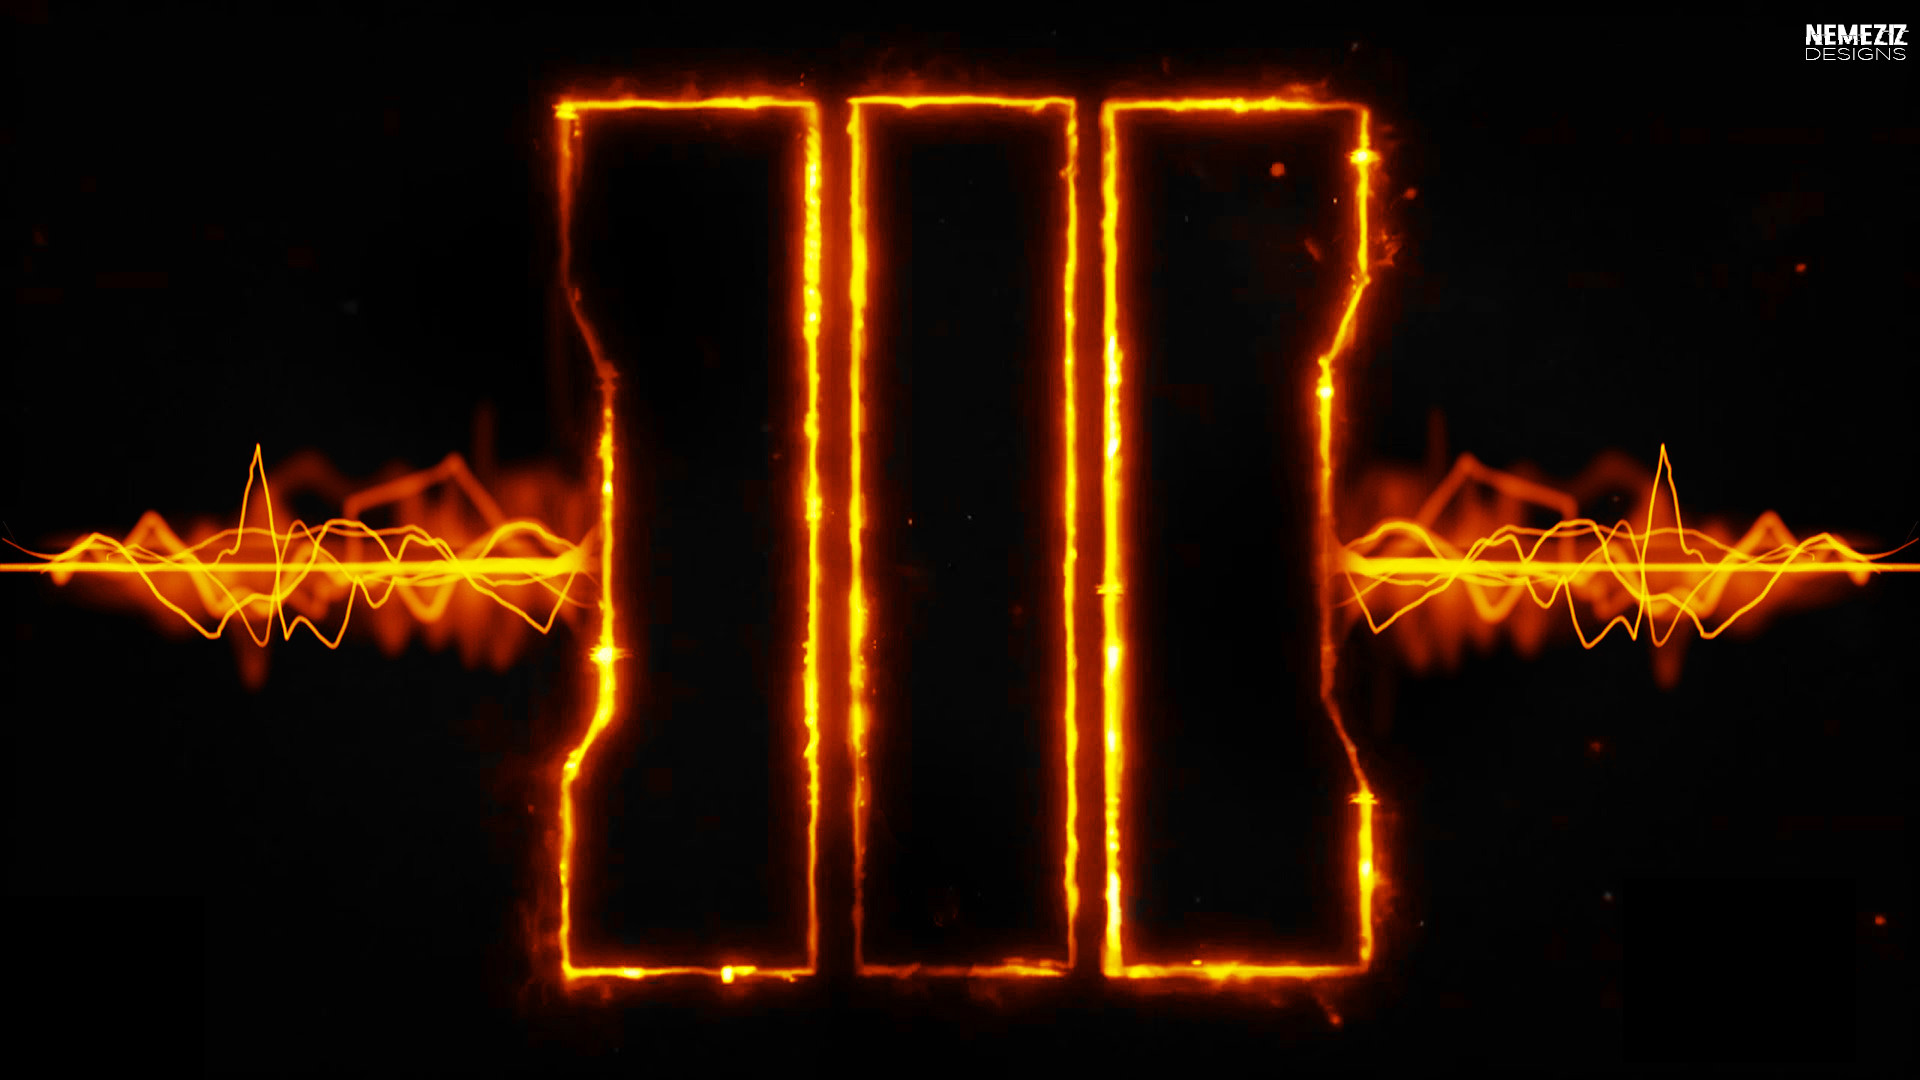 Black Ops 3 Wallpaper HD 1920x1080 By NemeZiz DESIGNS